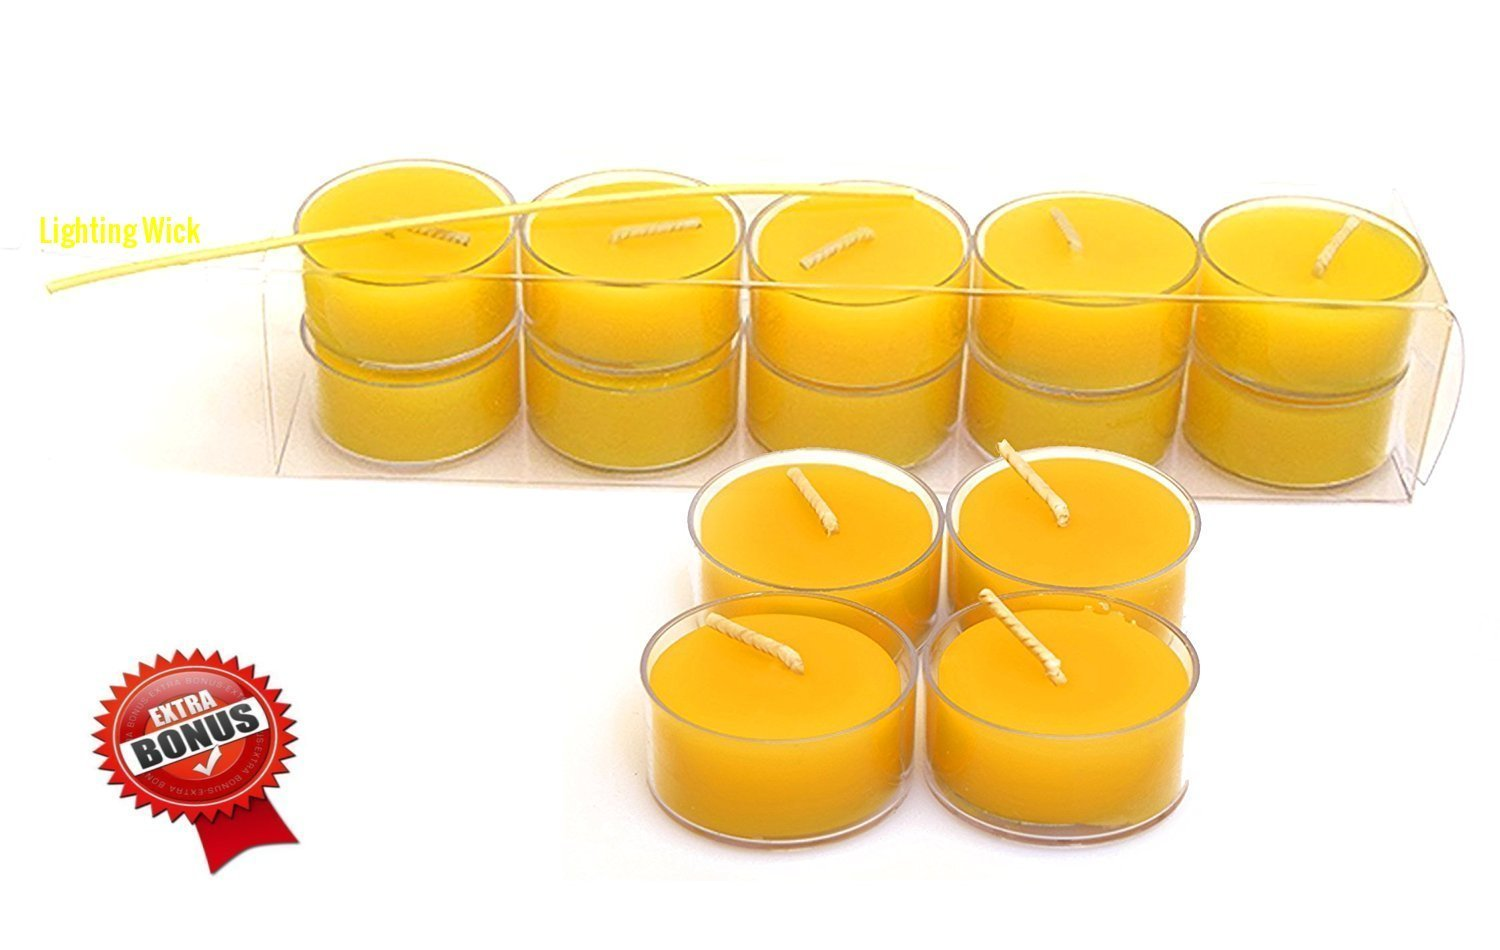 100% Pure Original Refined Beeswax Tea Light Candles with Spacial Chemical Free 100% Cotton/Beeswax Wick *BOUNS* Get a free DRIPLESS beeswax lighter Wick Pure Bee